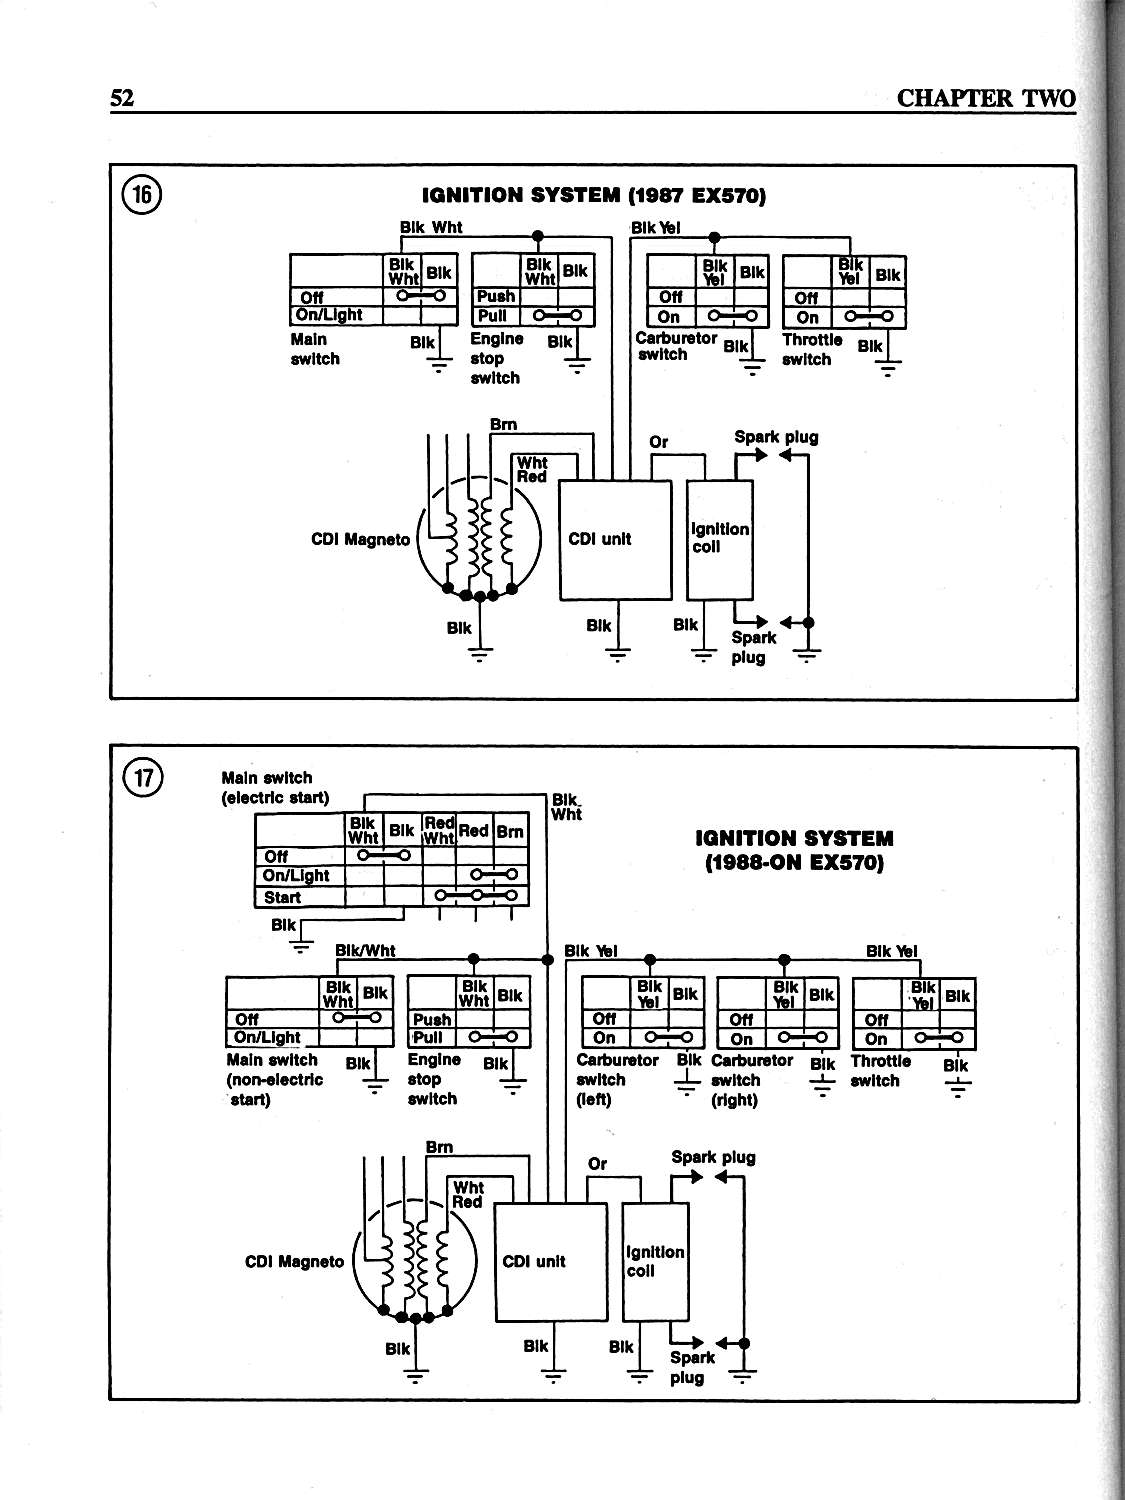 yamaha phazer wiring diagram - mitsubishi fg25 lift wiring diagram list  data schematic  santuariomadredelbuonconsiglio.it